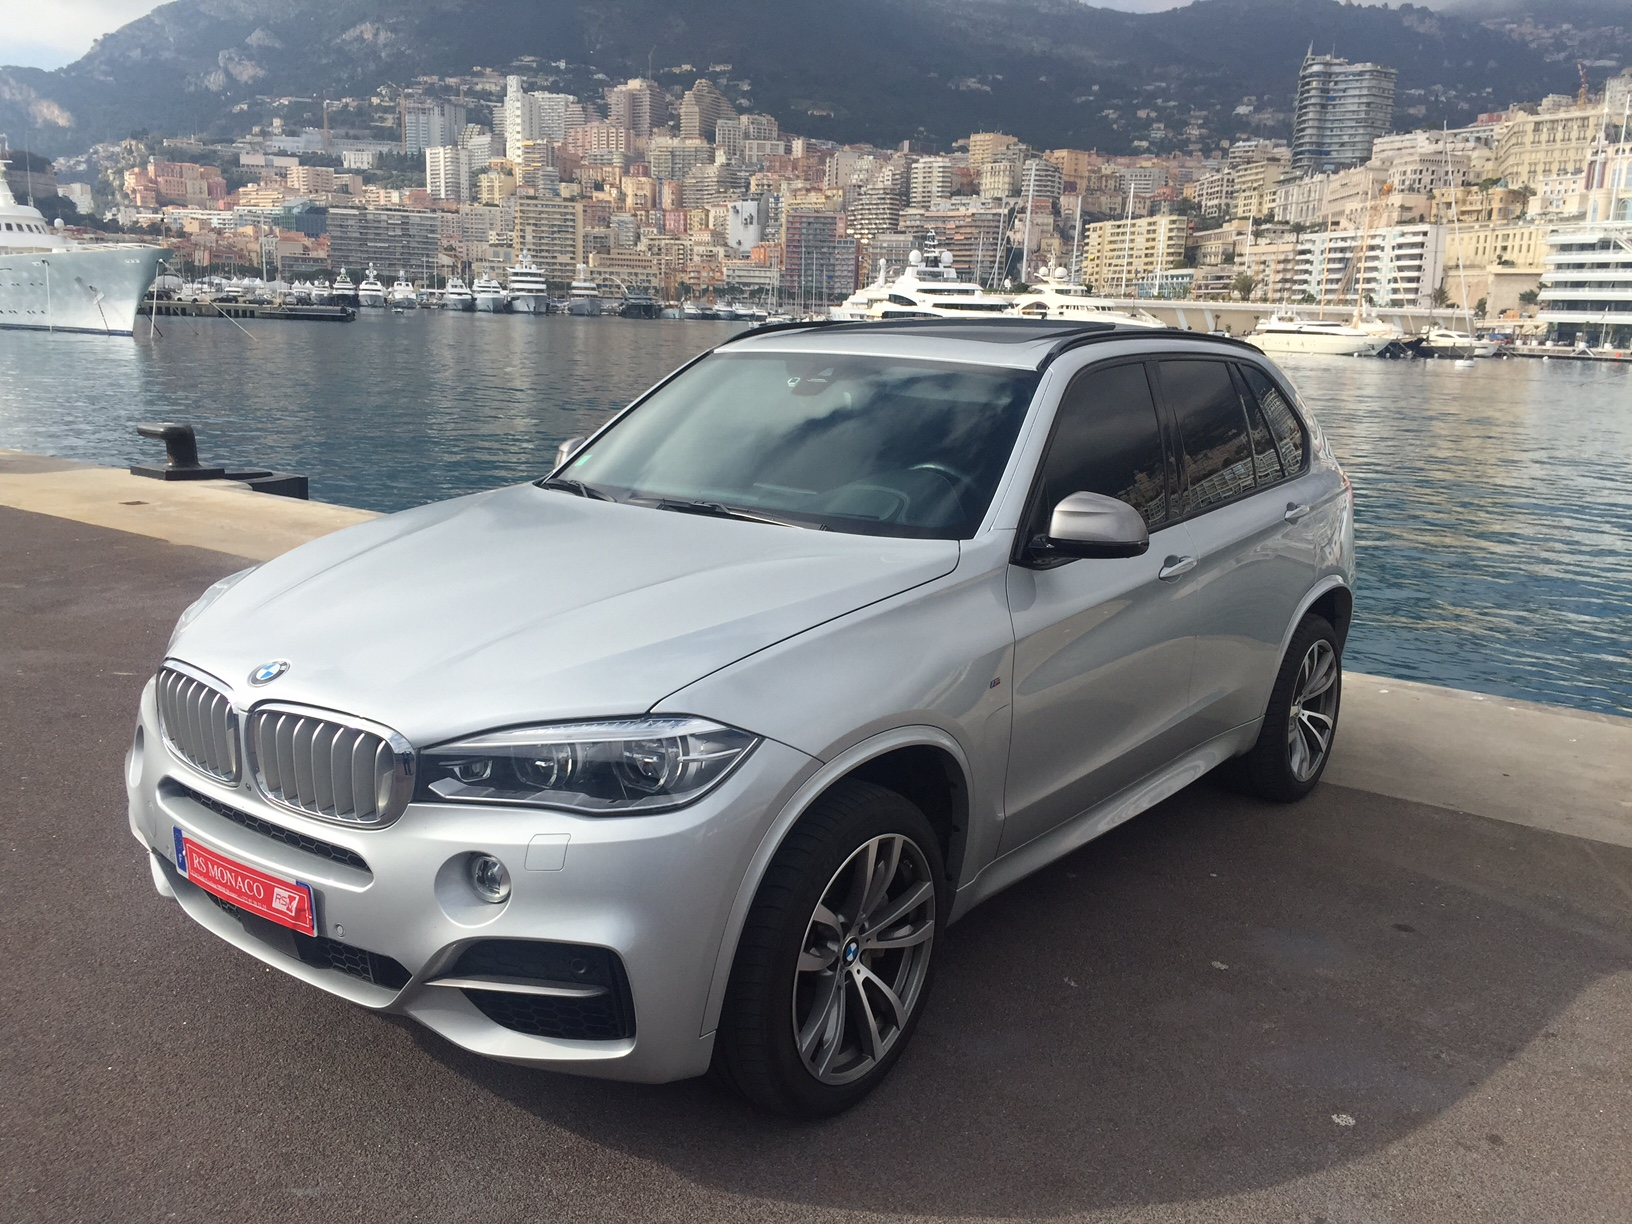 bmw x5 m 5 0 d 381 cv s l ctionn par rs monaco. Black Bedroom Furniture Sets. Home Design Ideas